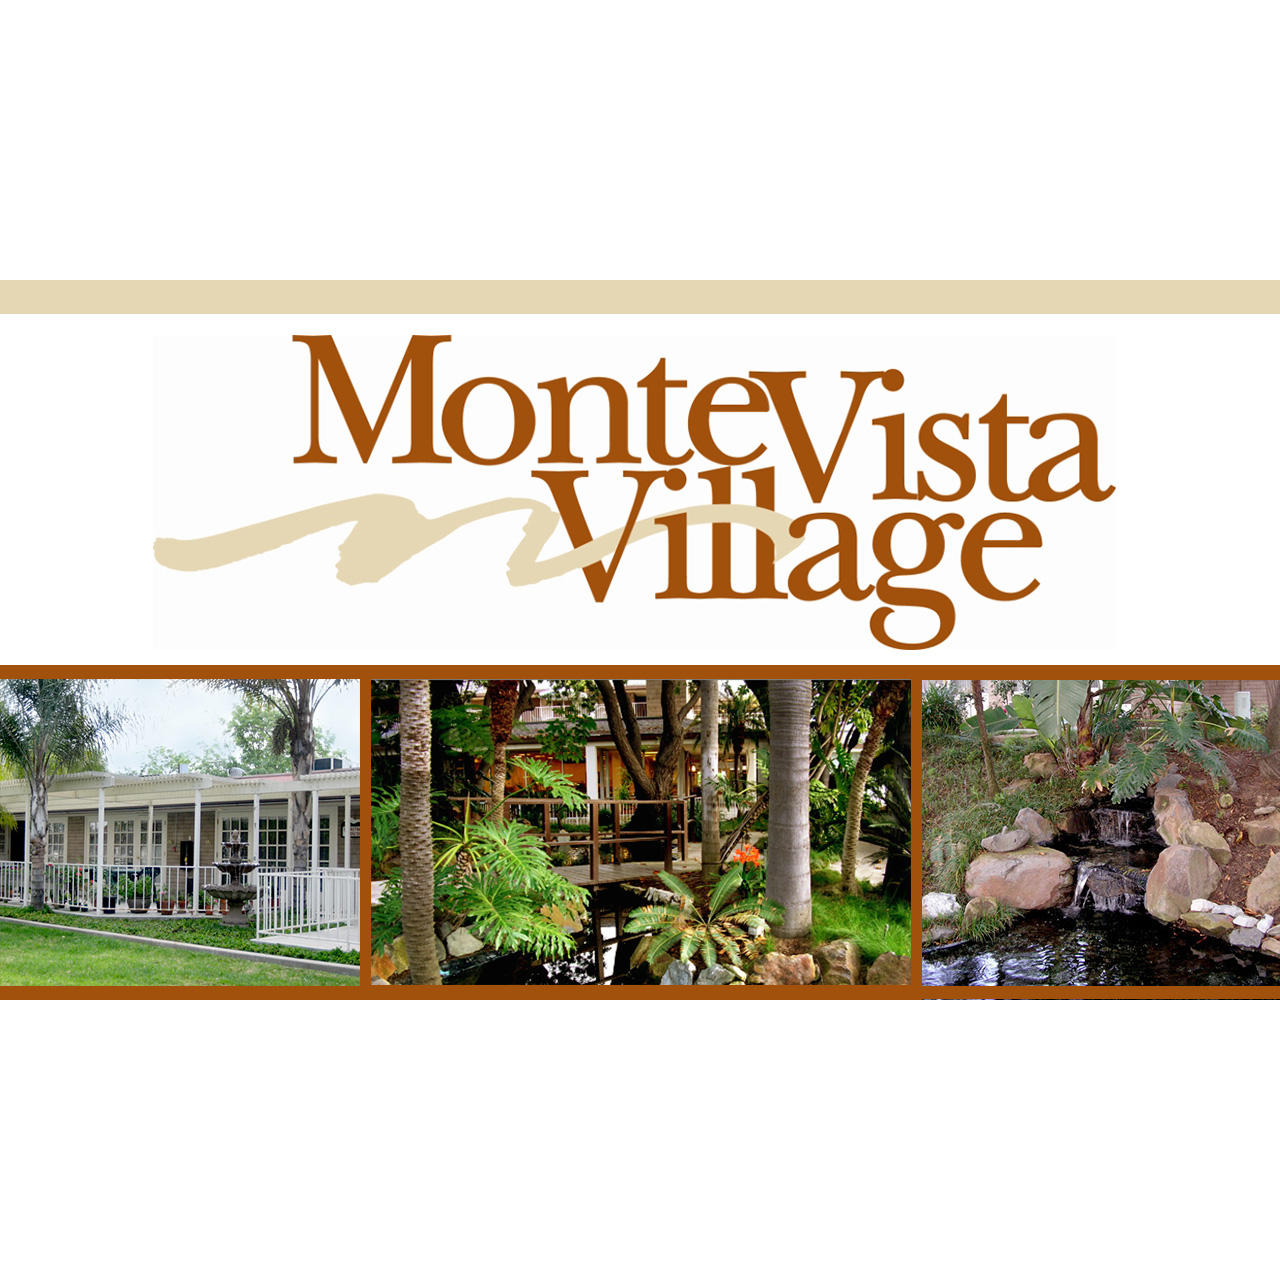 Lemon Grove Avenue: Monte Vista Village 2211 Massachusetts Ave Lemon Grove, CA